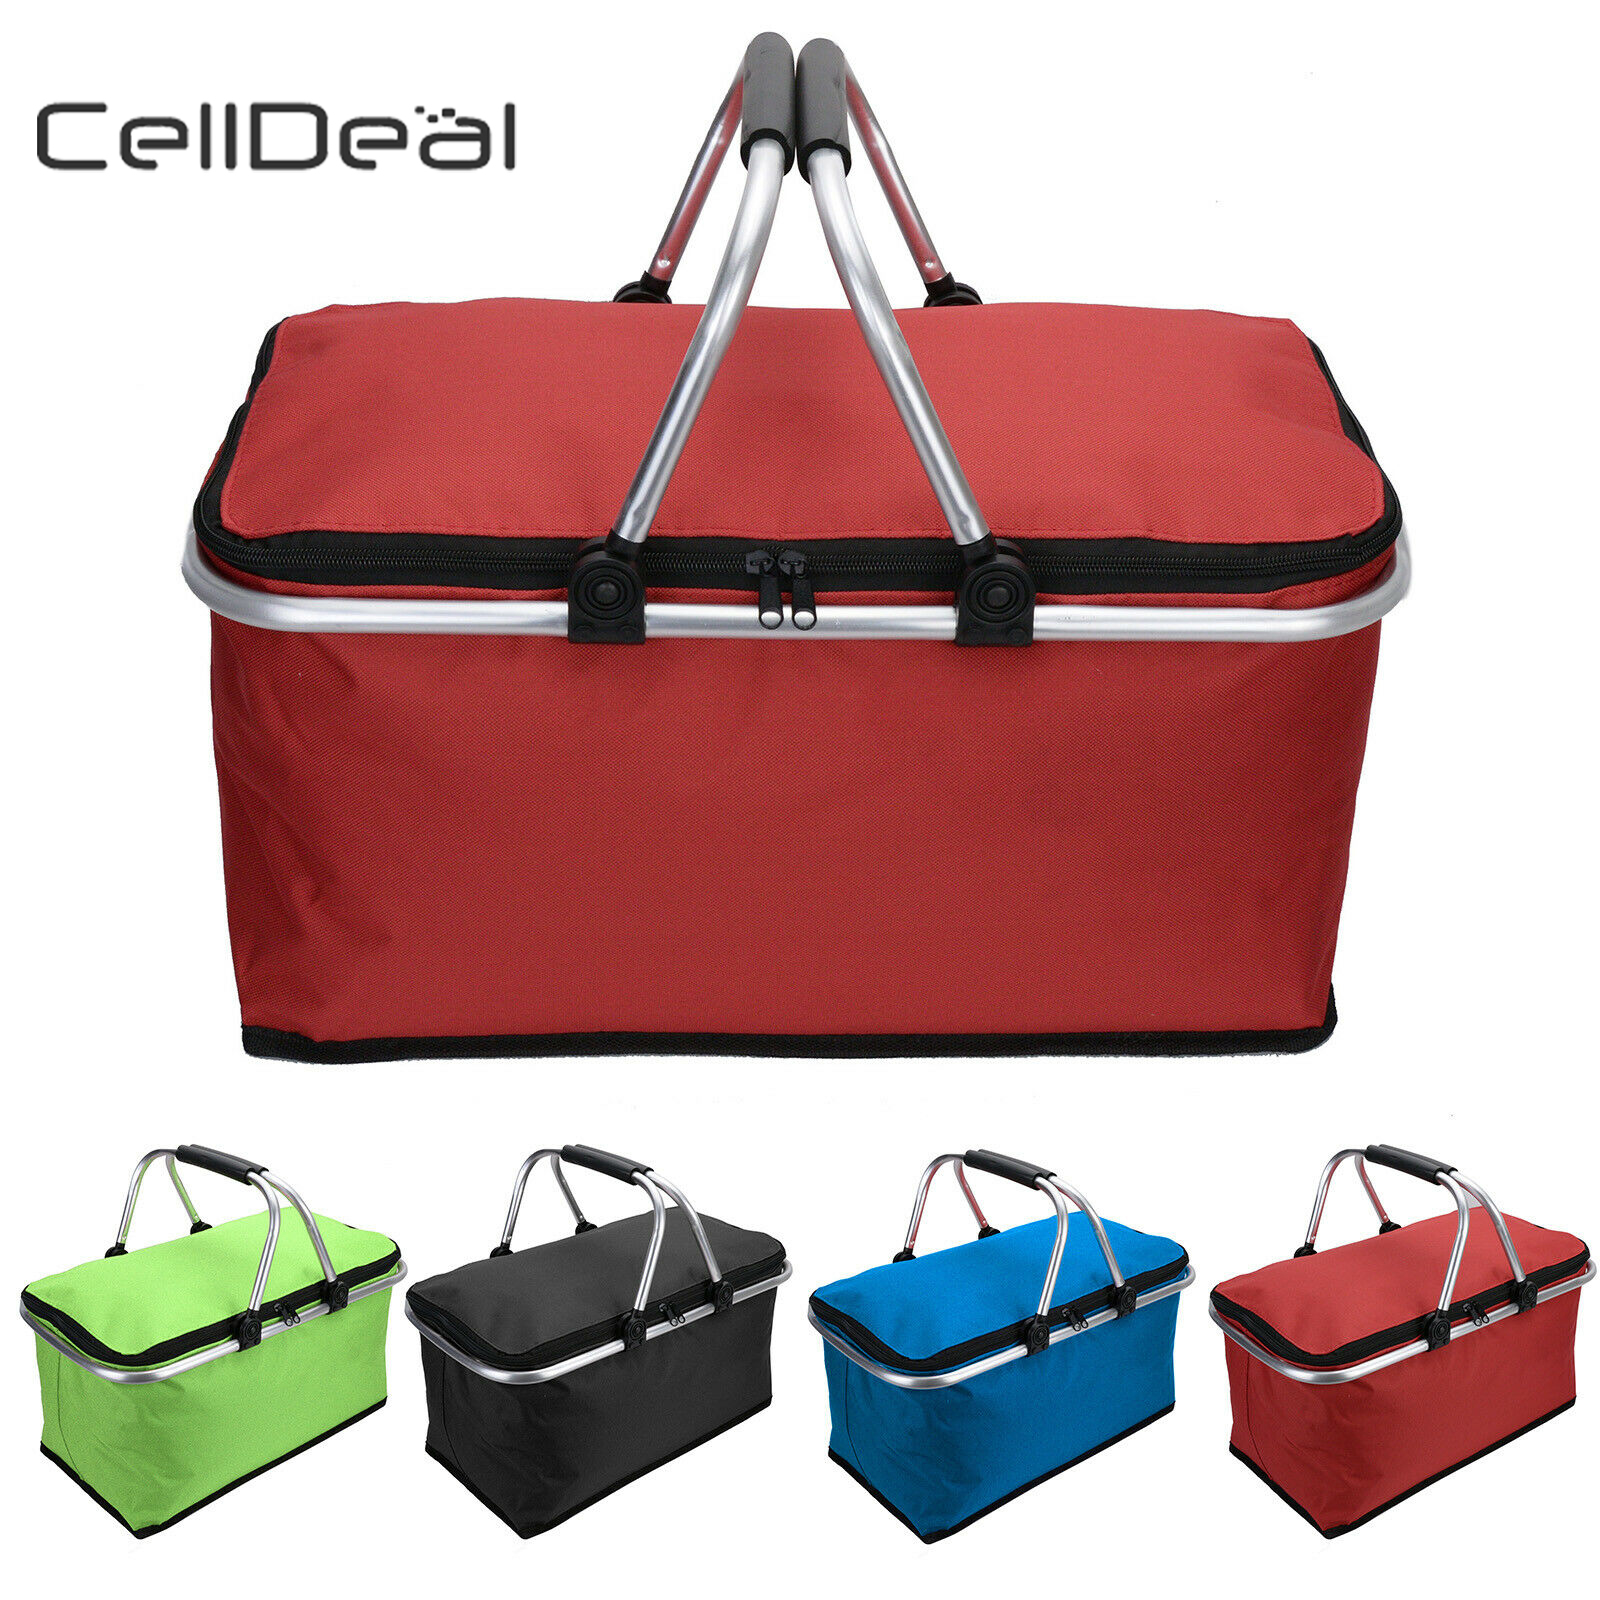 30L Insulated Folding Picnic Camping Shopping Cooler Cool Hamper Basket BagBox Kitchen Organizing|Bags & Baskets| |  - title=